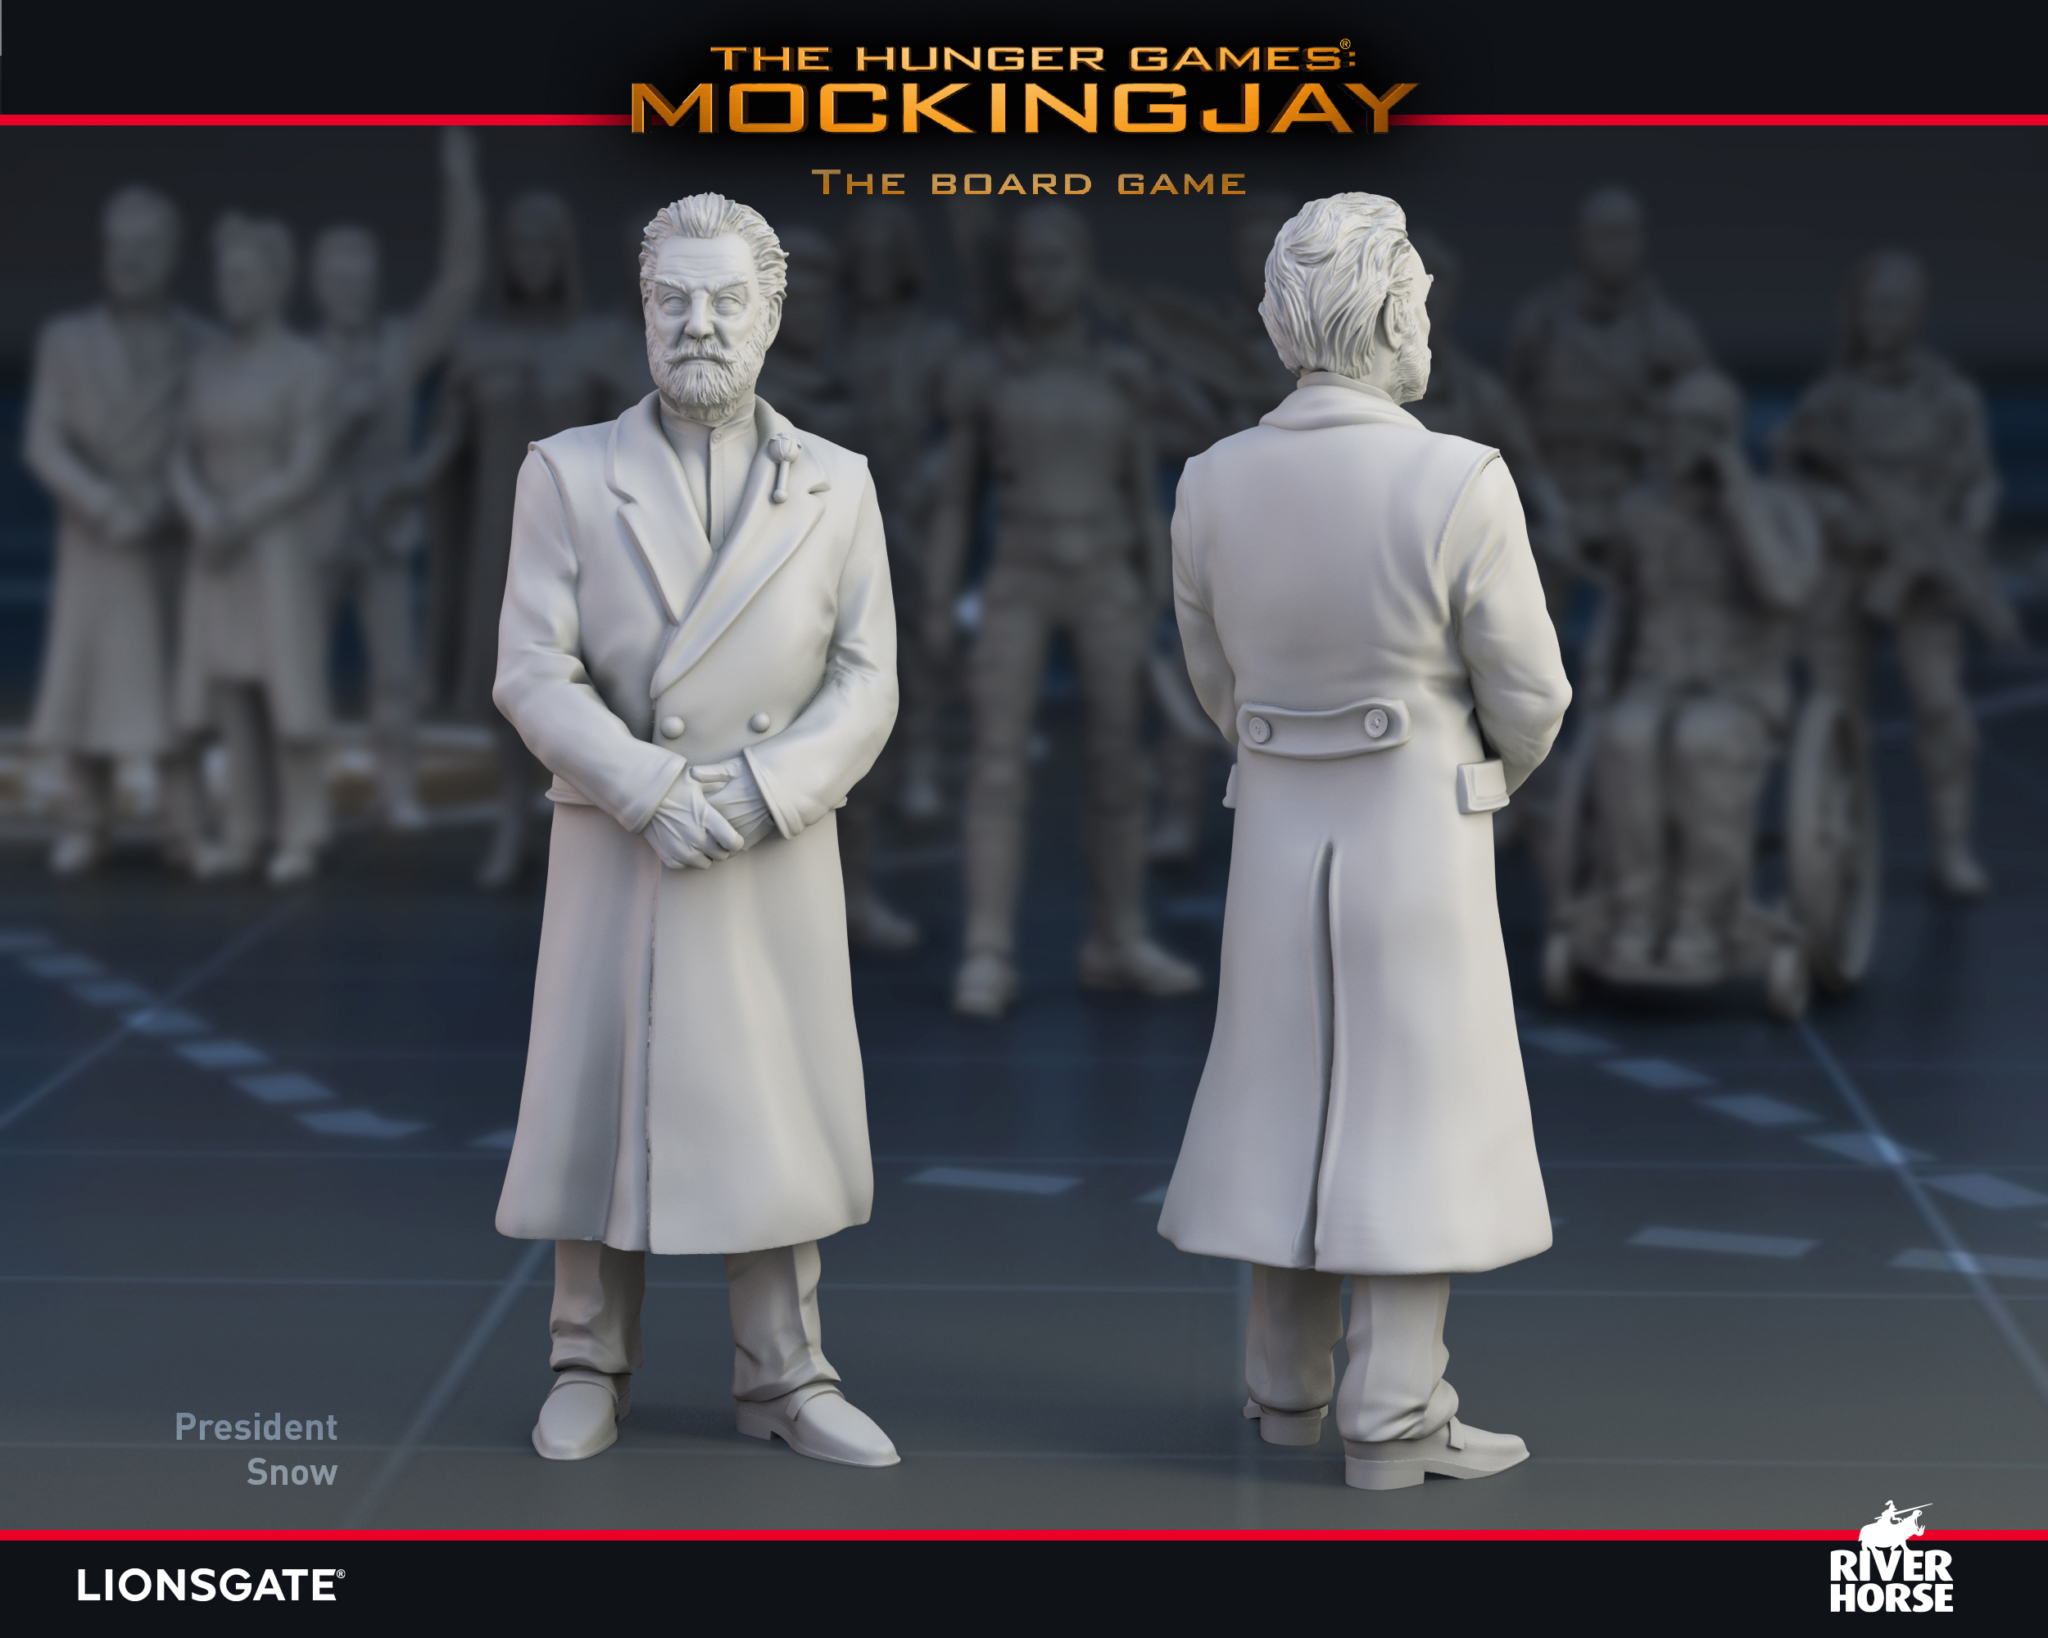 Render of President Snow for The Hunger Games: Mockingjay - The Board Game by River Horse